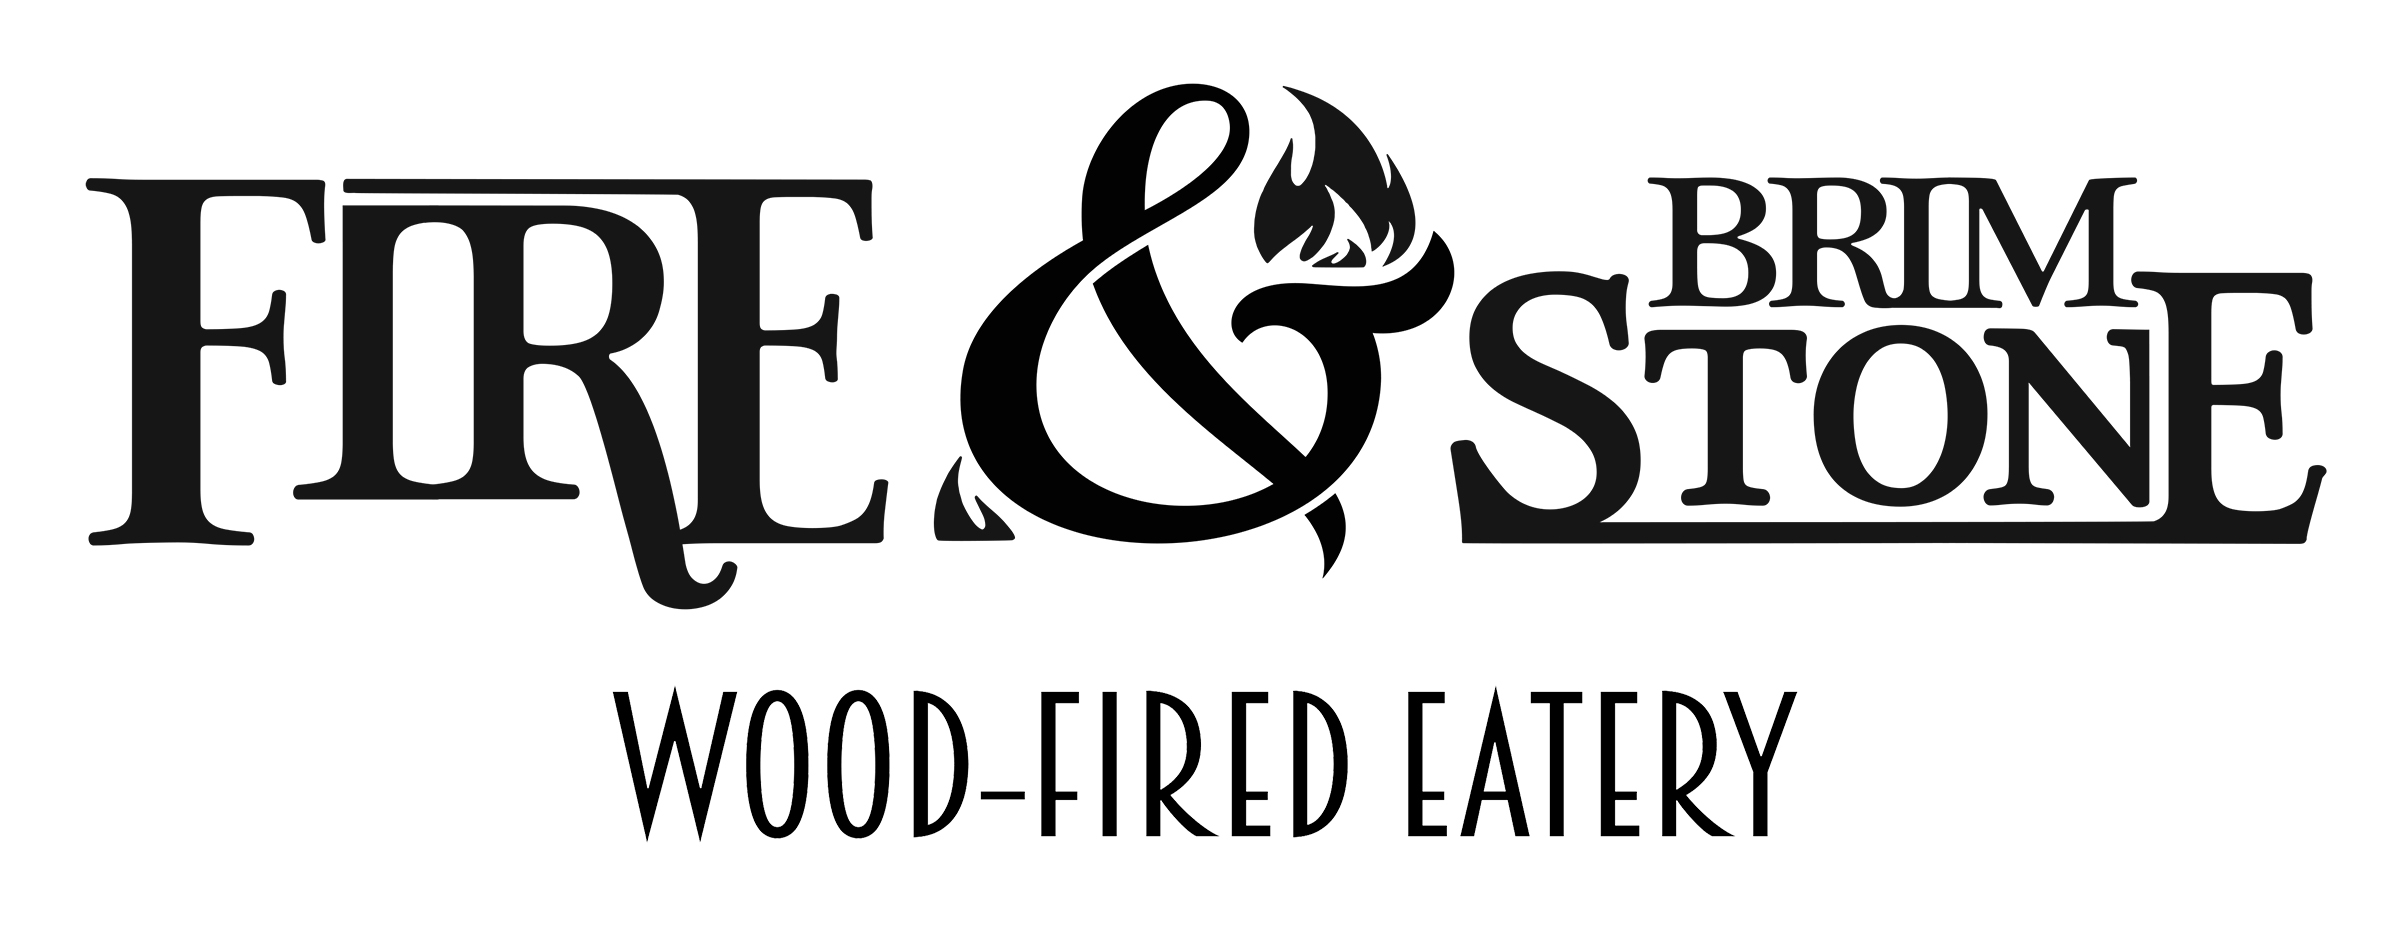 The Fire & Brimstone Wood-Fired Eatery